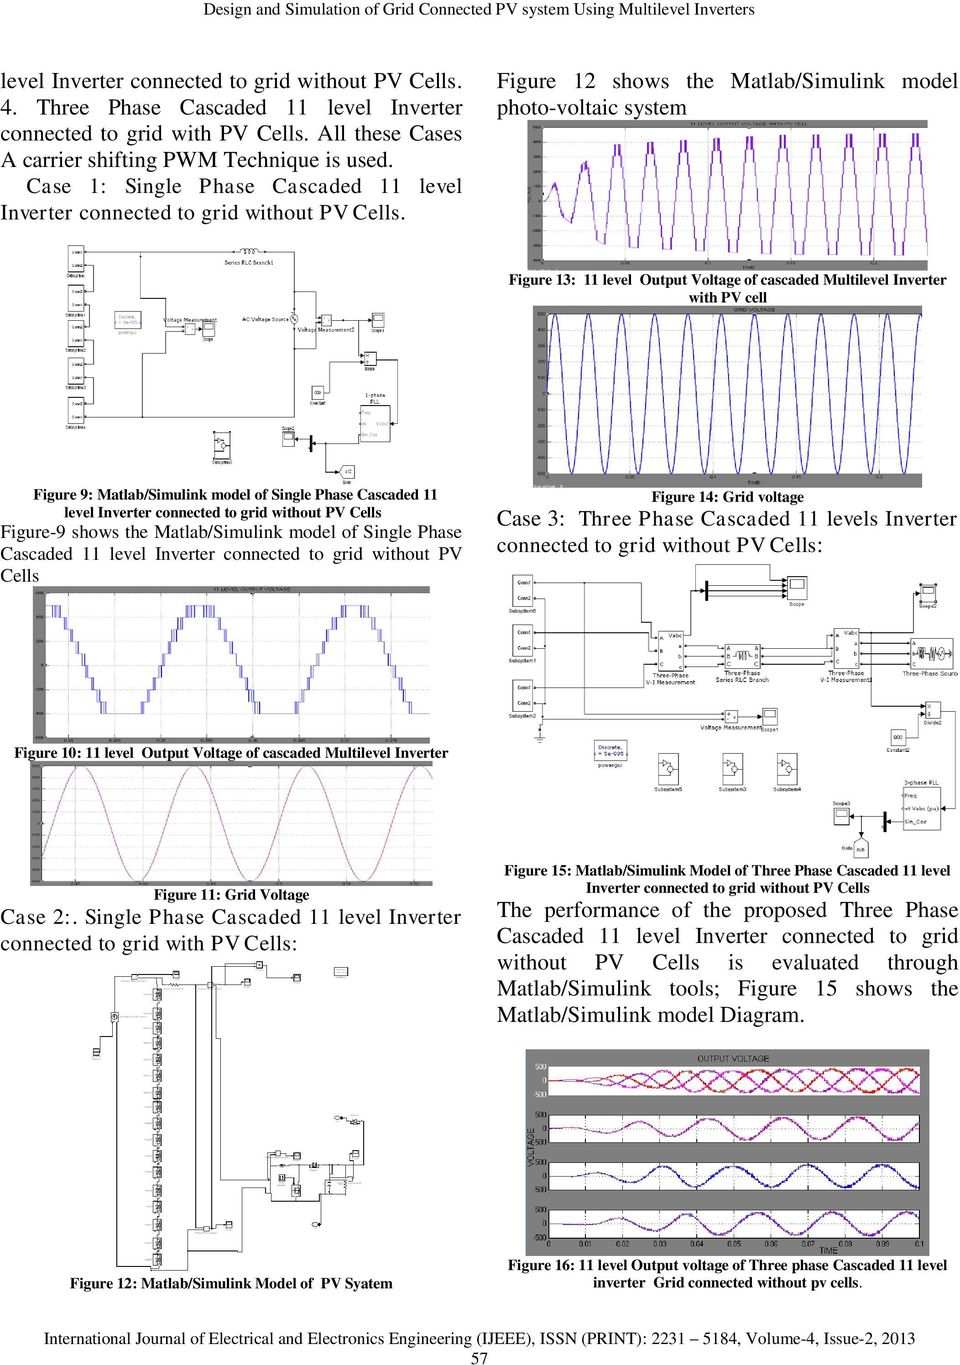 Design and Simulation of Grid Connected PV system Using